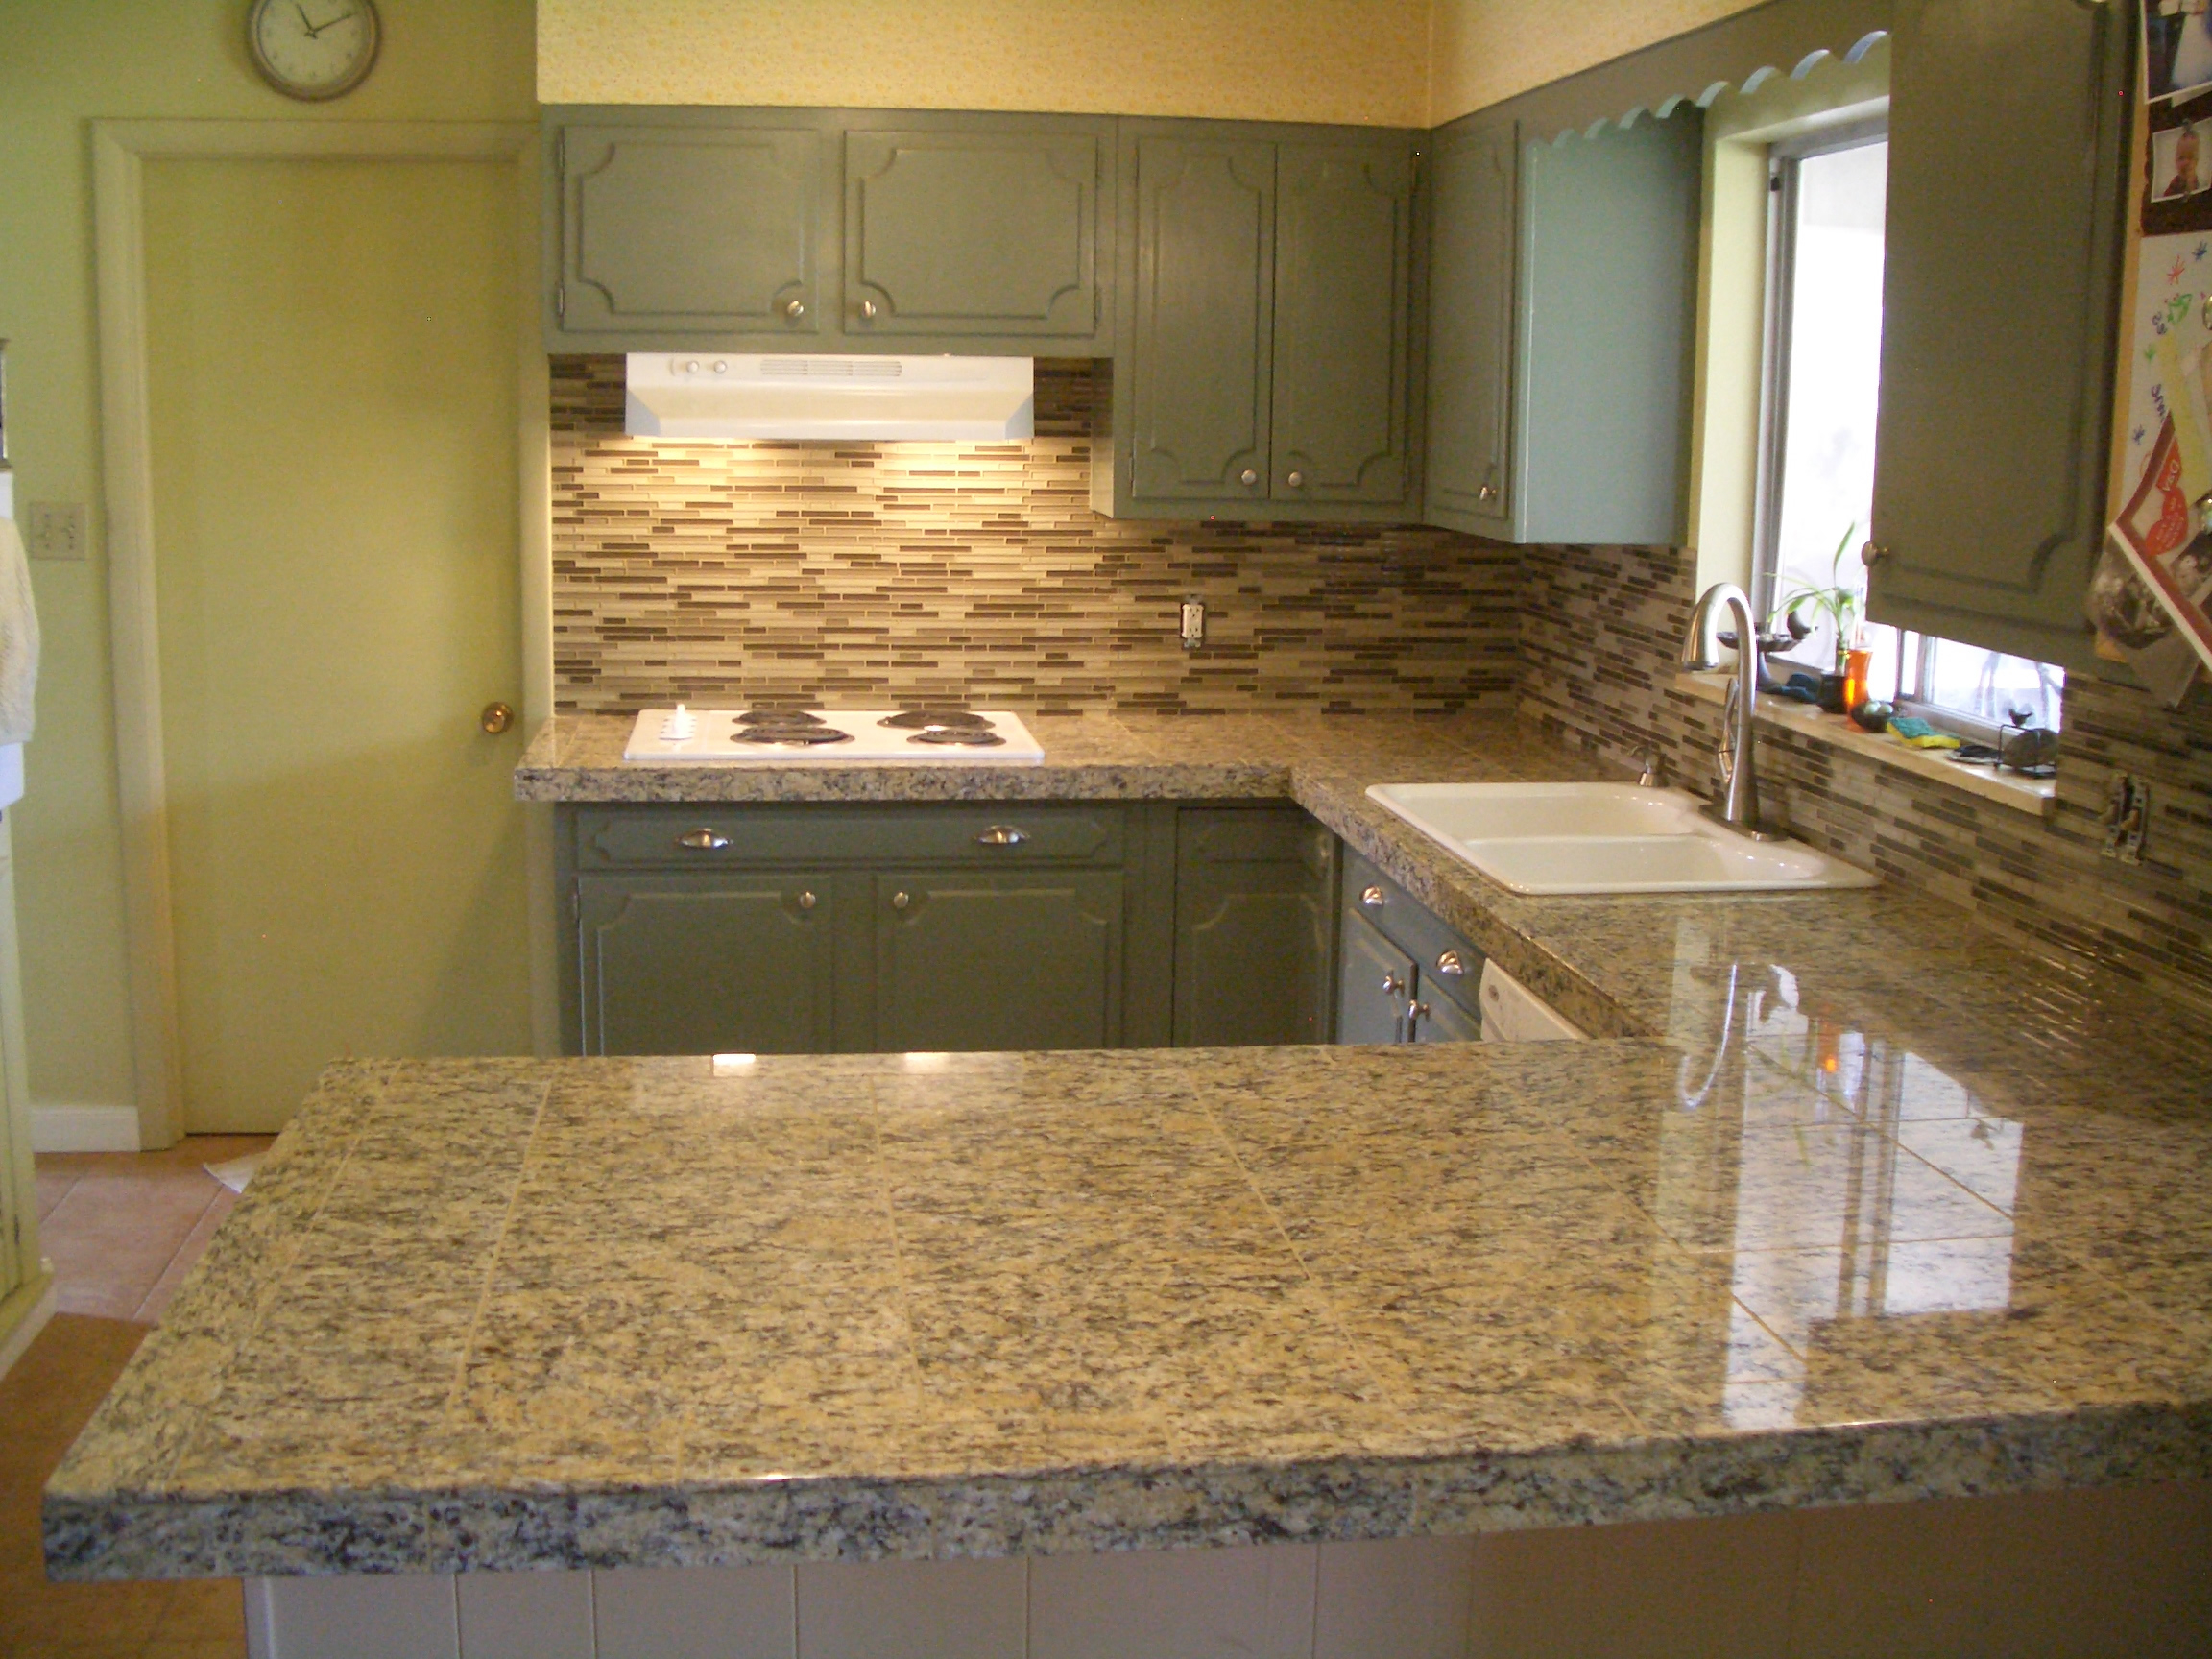 Kitchen Beige Stack Glass Tile Backsplash Porcelain Tiles Ideas Wall How To Decorate A Subway Tile For Kitchen Decorations Ornament Ideas Pictures Saltillo In Install Design Ceramic (Image 28 of 38)